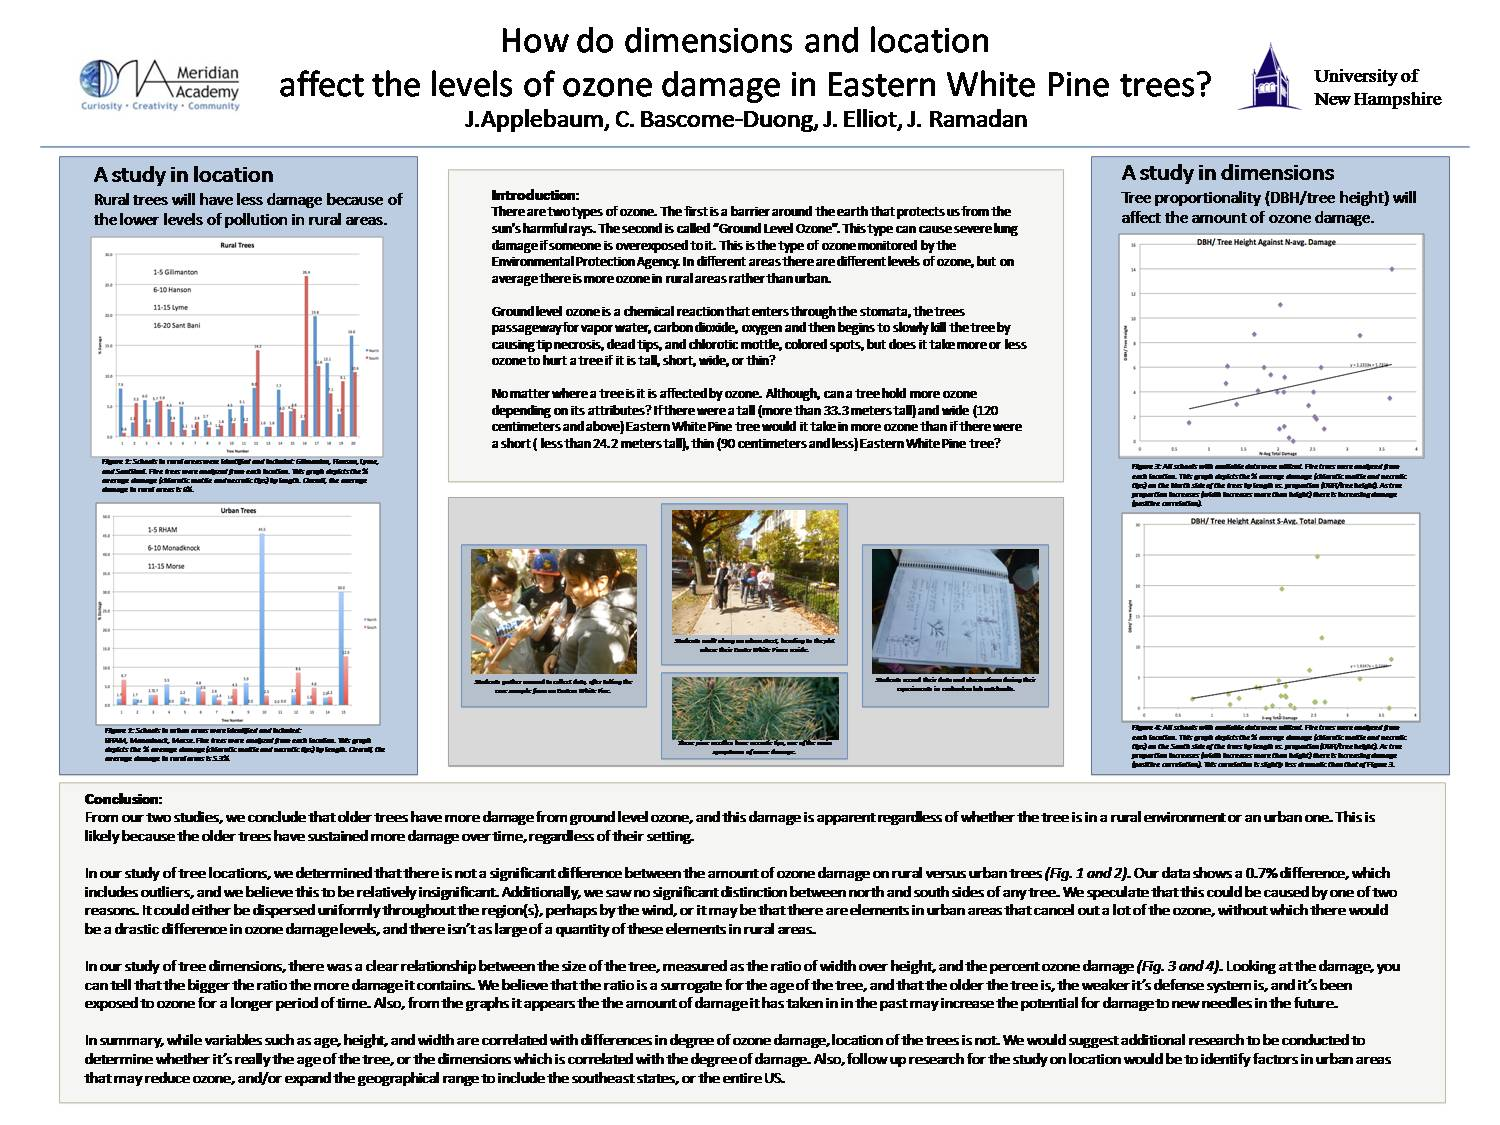 How Do Dimensions And Location Affect The Levels Of Ozone Damage In Eastern White Pine Trees? by skinkel